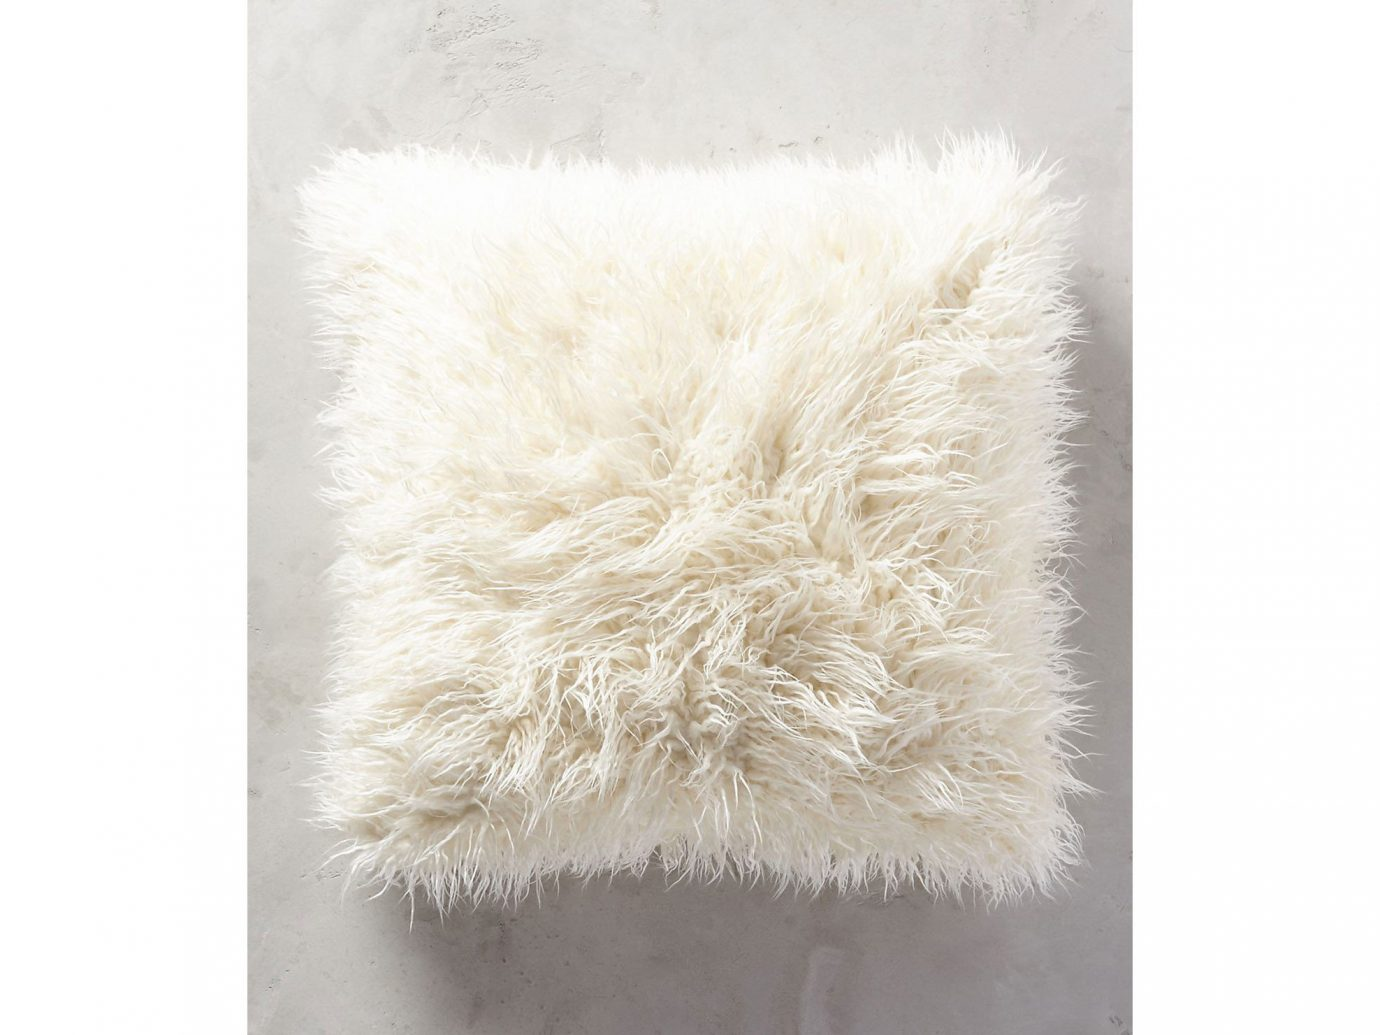 City Copenhagen Kyoto Marrakech Palm Springs Style + Design Travel Shop Tulum fur rug wool cushion feather pillow